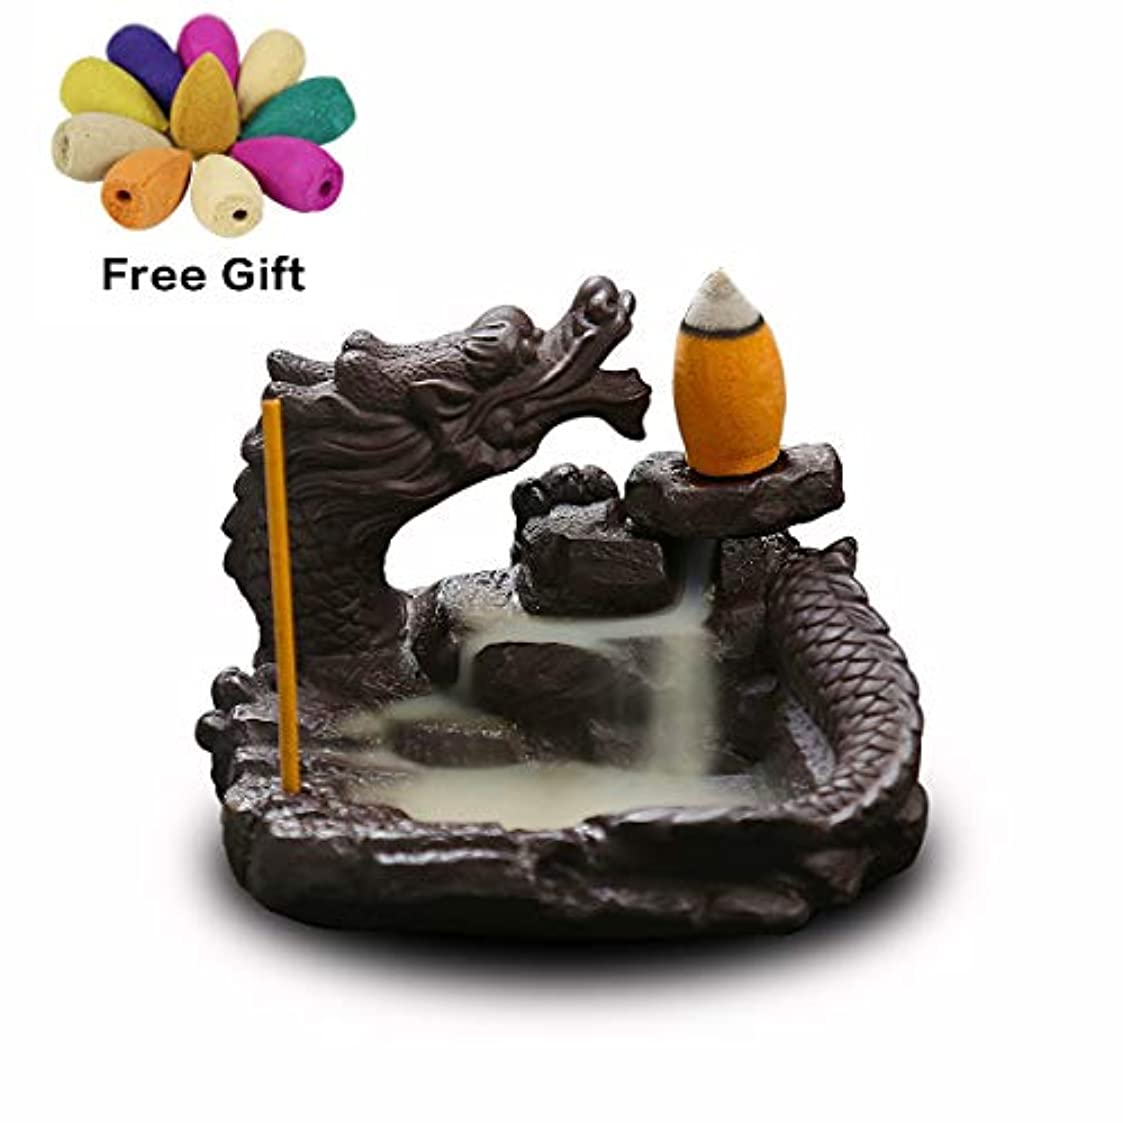 追い払う取り替える固執(Style6) - OTOFY Mythical Dragon Backflow Incense Holder Figurine Incense Cone Holder Gothic Home Decor